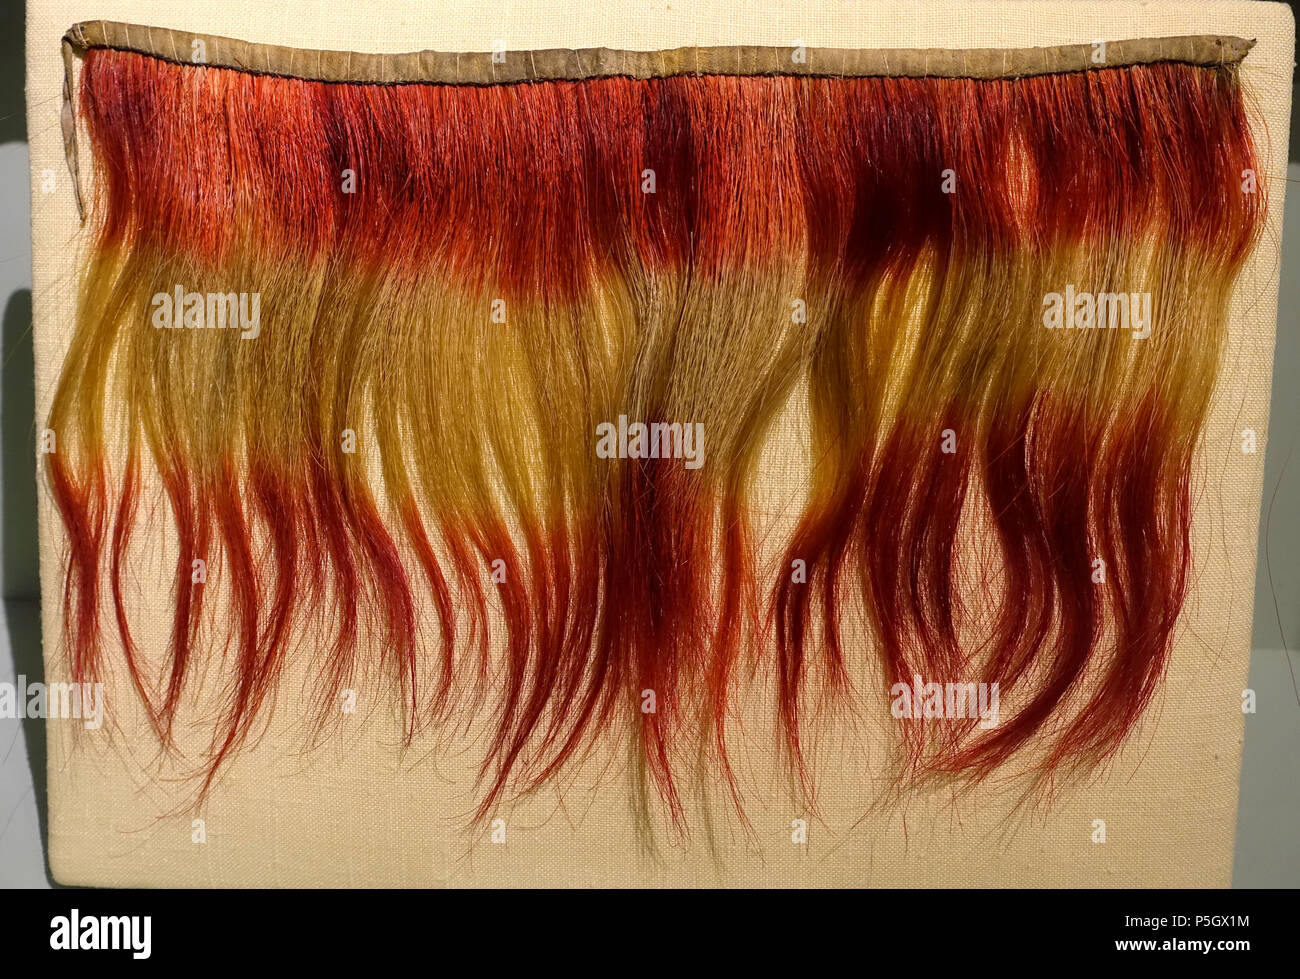 N/A. English: Exhibit from the Native American Collection, Peabody Museum, Harvard University, Cambridge, Massachusetts, USA. Photography was permitted without restriction; exhibit is old enough so that it is in the . 27 May 2017, 14:31:40. Daderot 365 Collar, Choctaw, dyed horsehair, before 1828 - Native American collection - Peabody Museum, Harvard University - DSC05888 Stock Photo